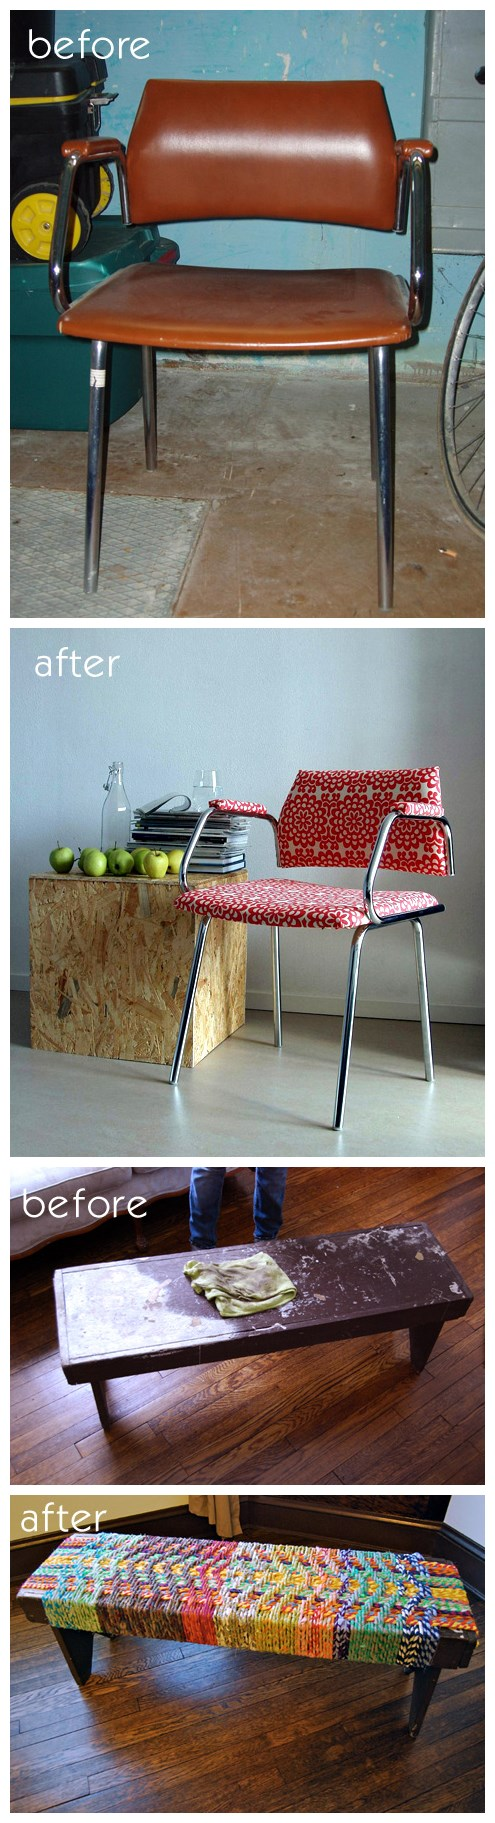 DIY chair makeover and rope bench tutorial instructions 2